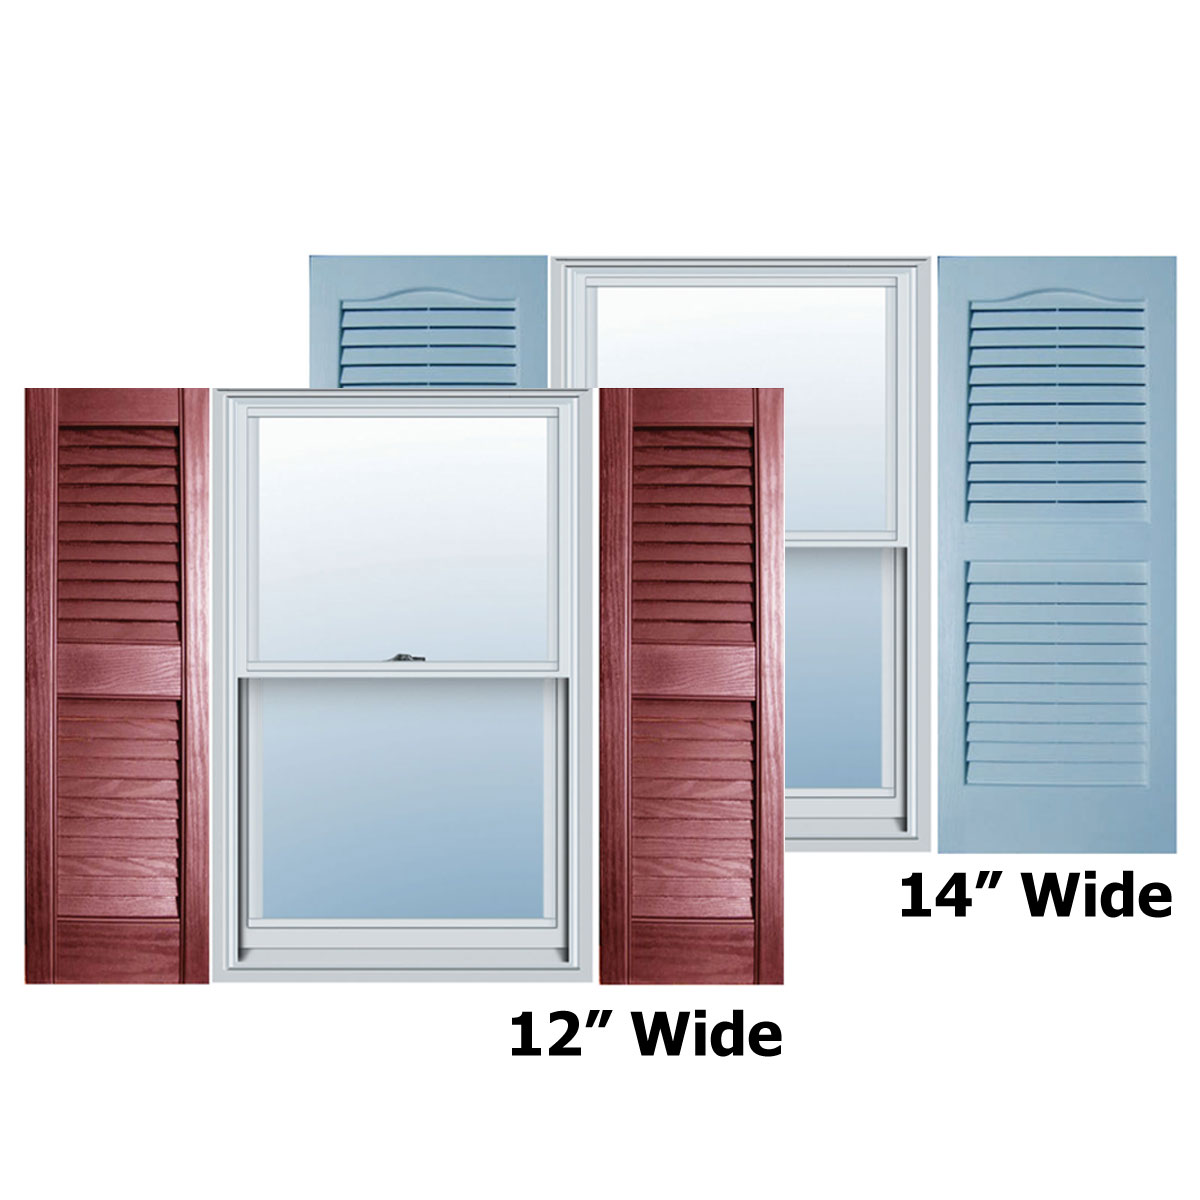 Alpha systems llc evl builders choice vinyl open louver wind - Exterior louvered window shutters ...